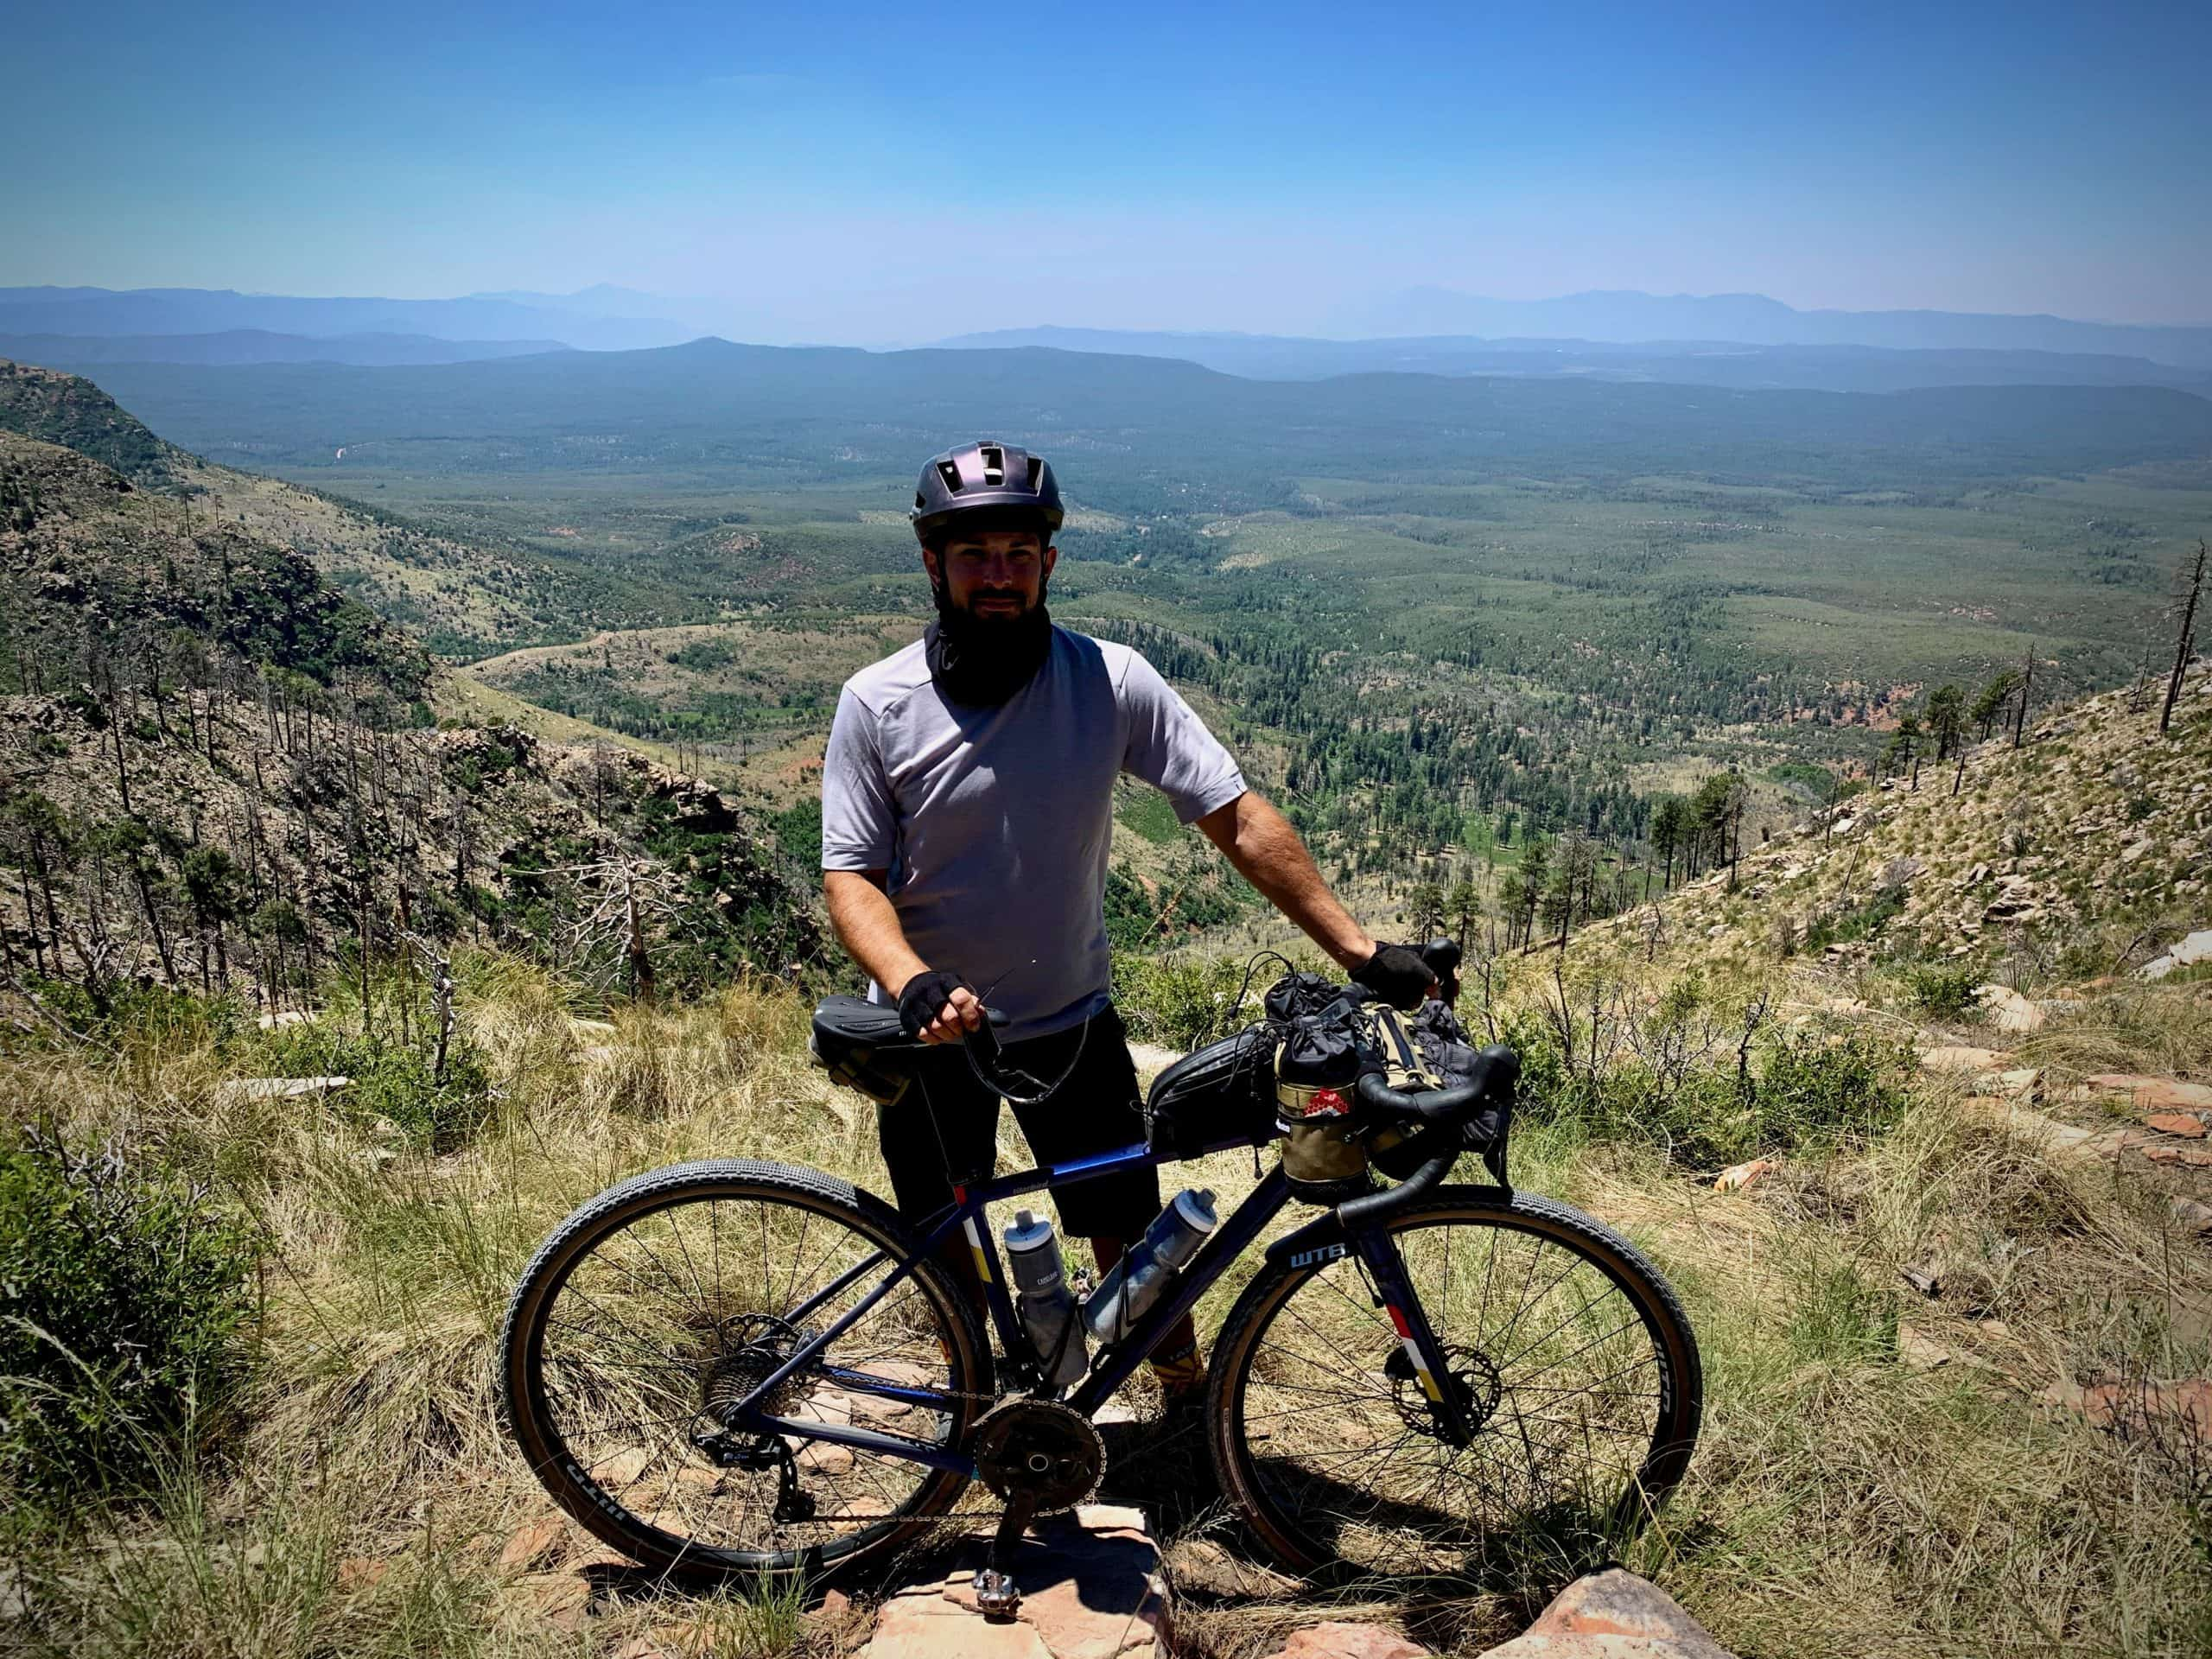 Gravel cyclists with bike and big views to the east from the Mogollon Rim in Central Arizona.